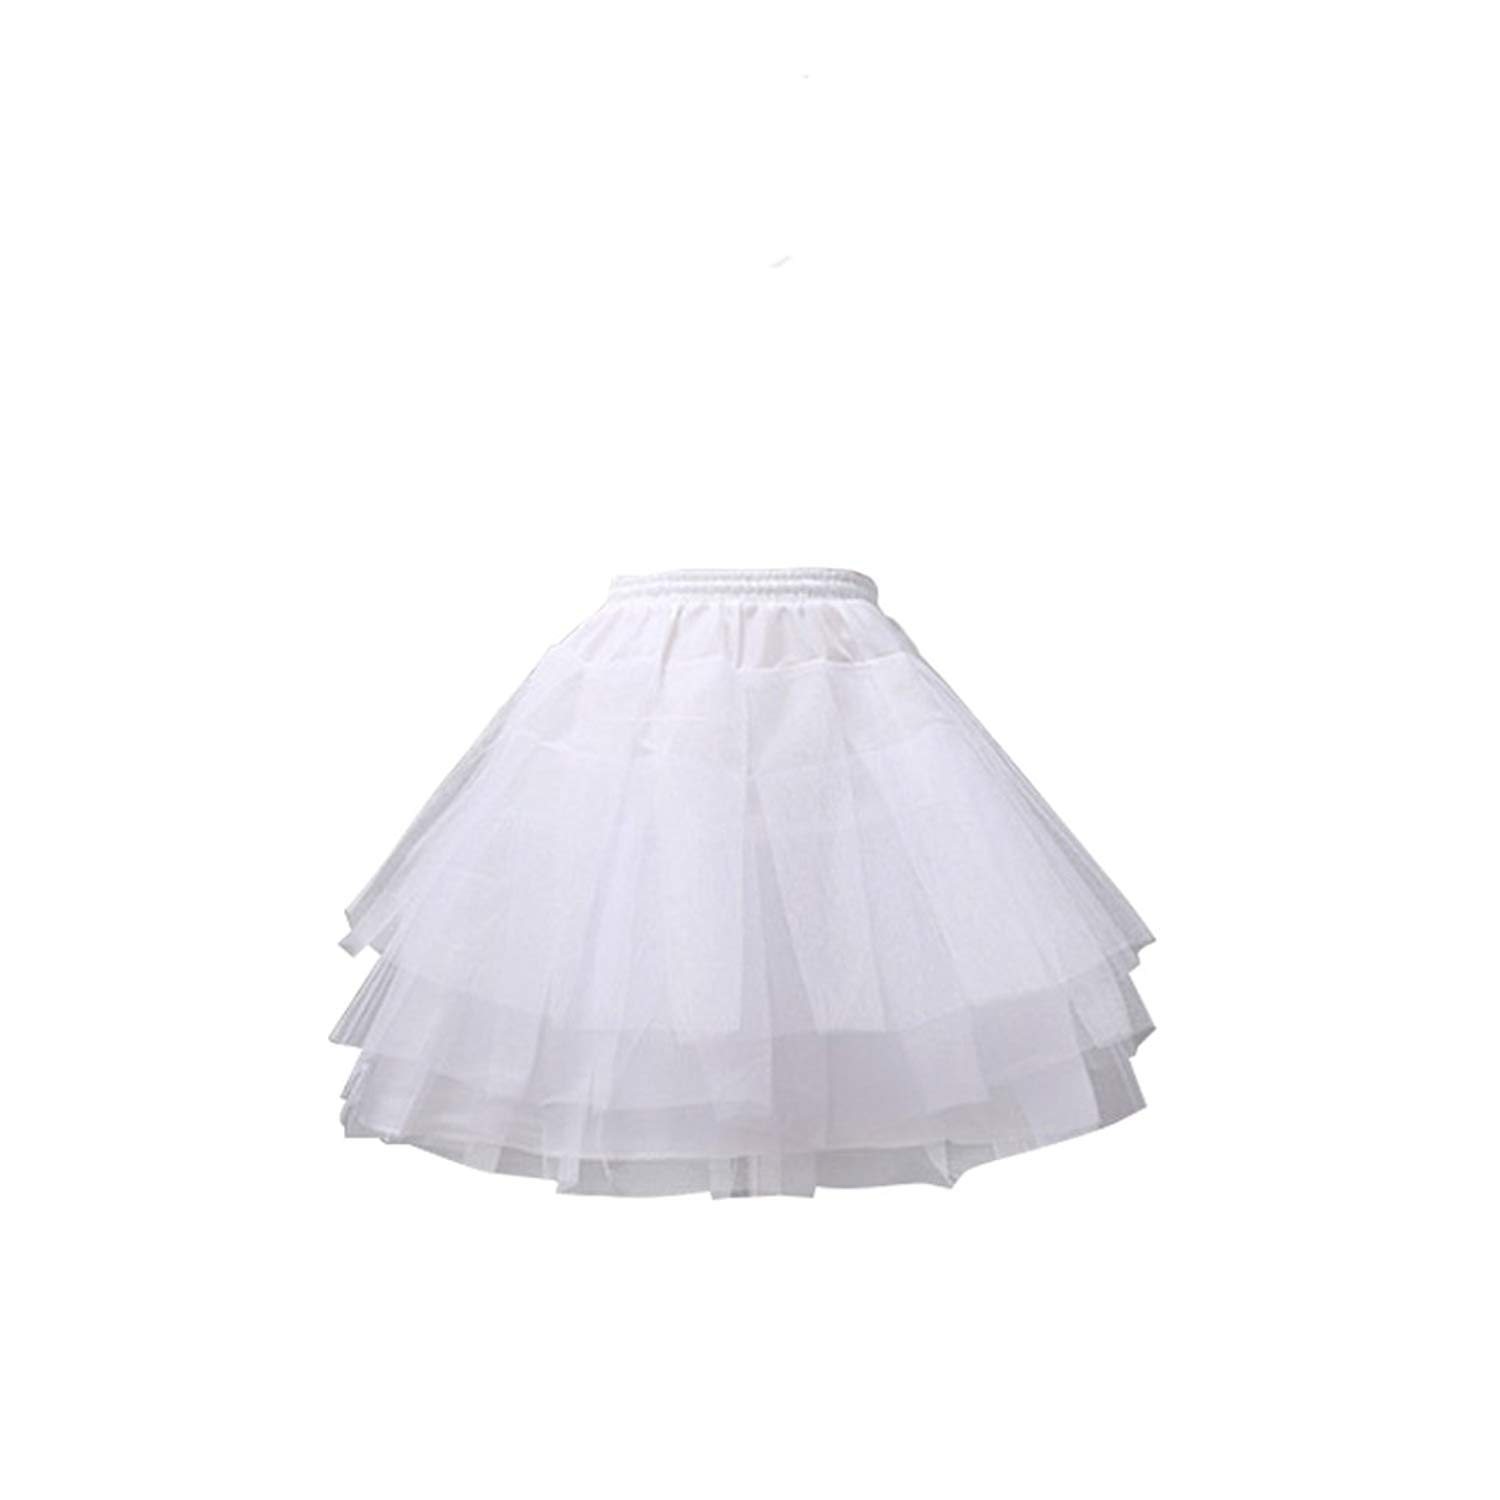 a04154d080671 Get Quotations · COUCOU Age Girls Lolita Petticoat Underskirt Half Slips  Hoopless